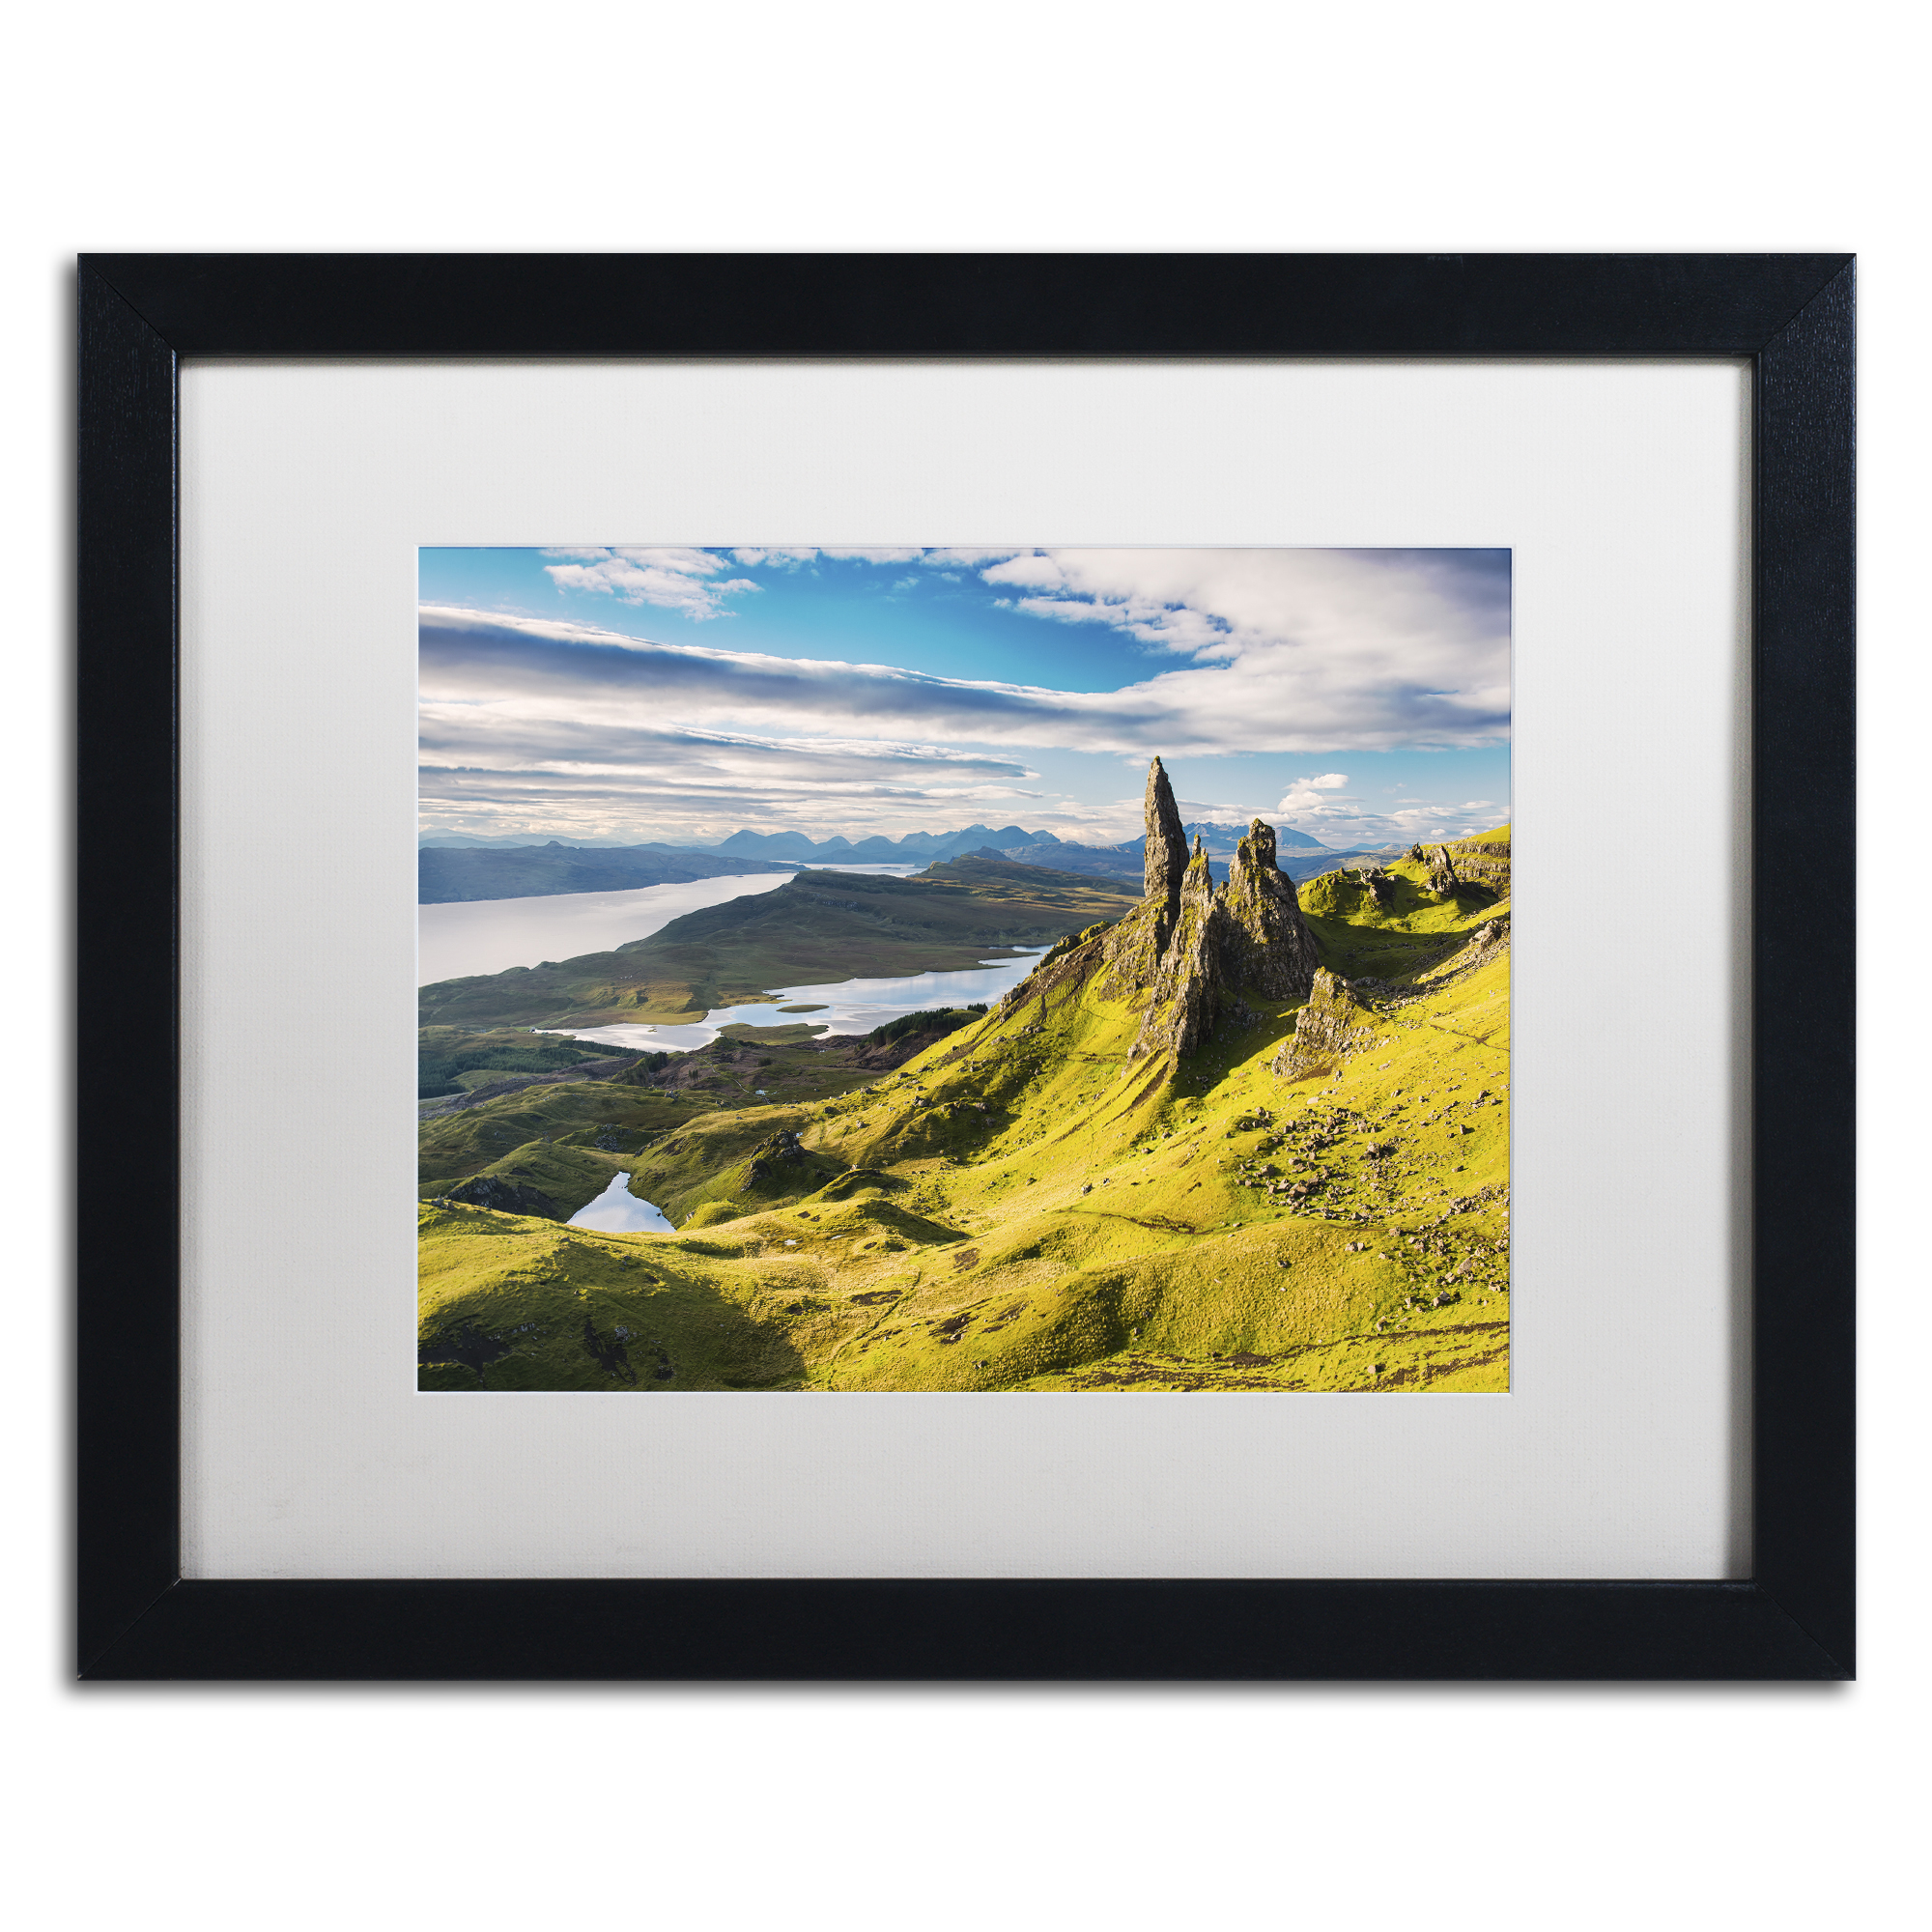 Michael Blanchette Photography 'Light on the Storr' Black Wooden Framed Art 18 x 22 Inches